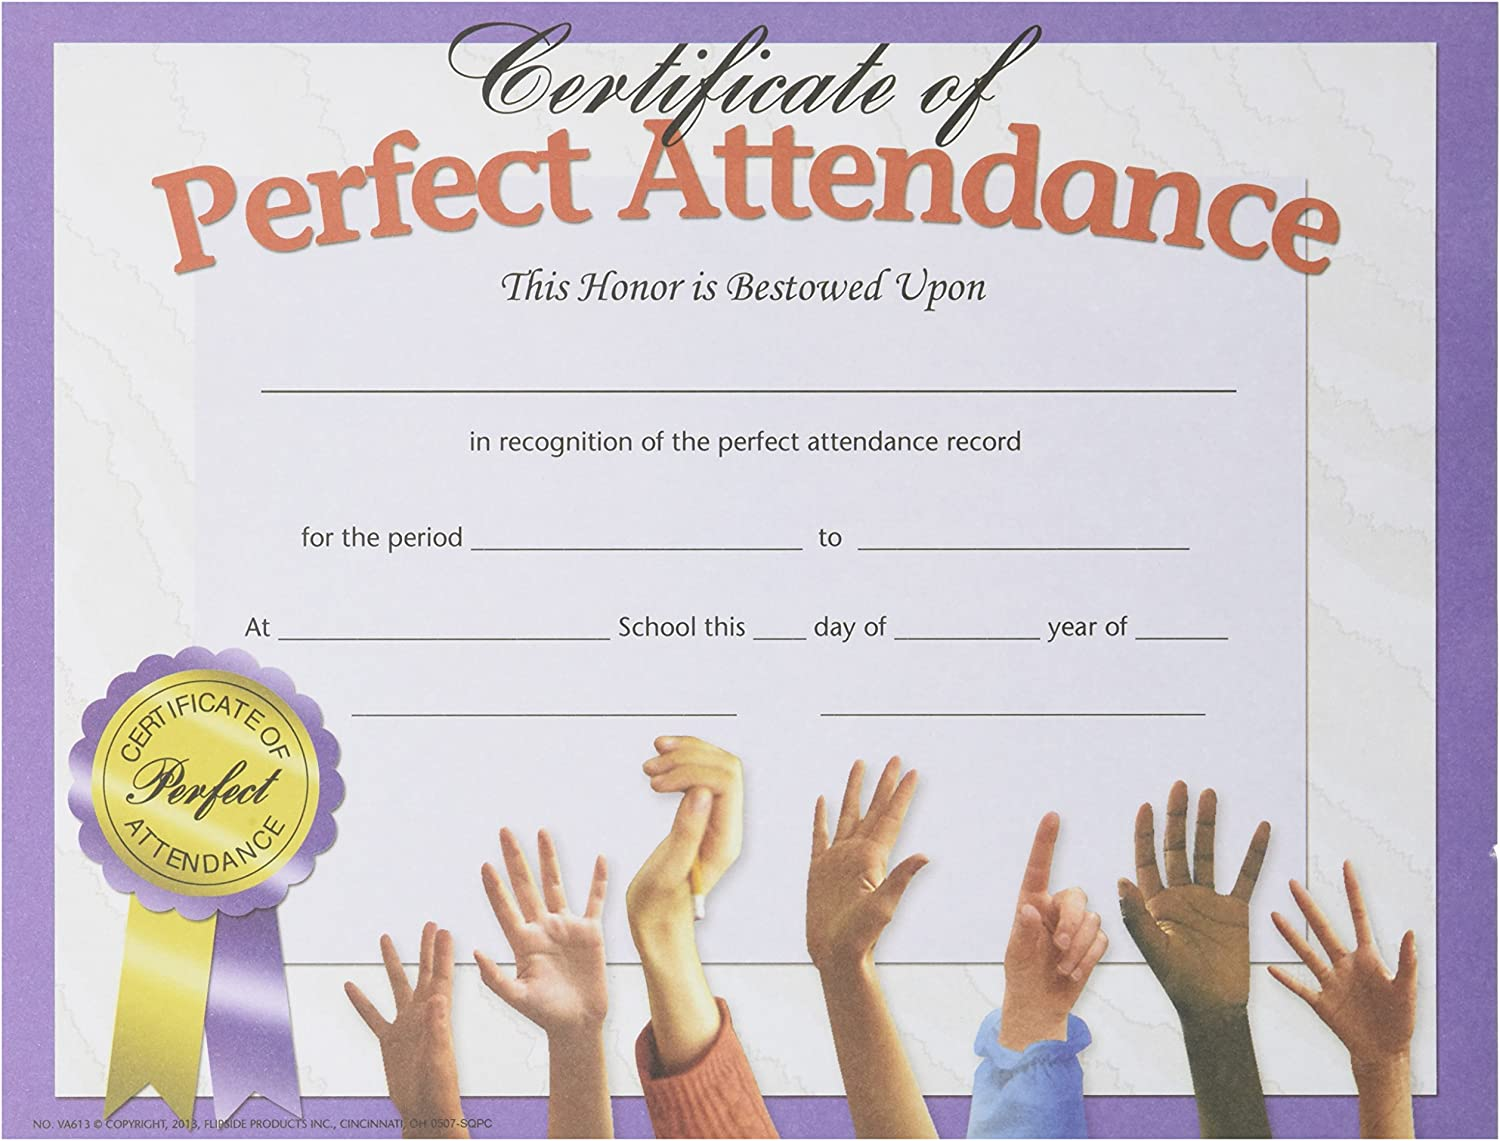 HAYES SCHOOL PUBLISHING VA613 Perfect Attendance Certificate 81 2 x 11 Size Paper 0.2 Height 8.4 Width 10.8 Length (Pack of 30)